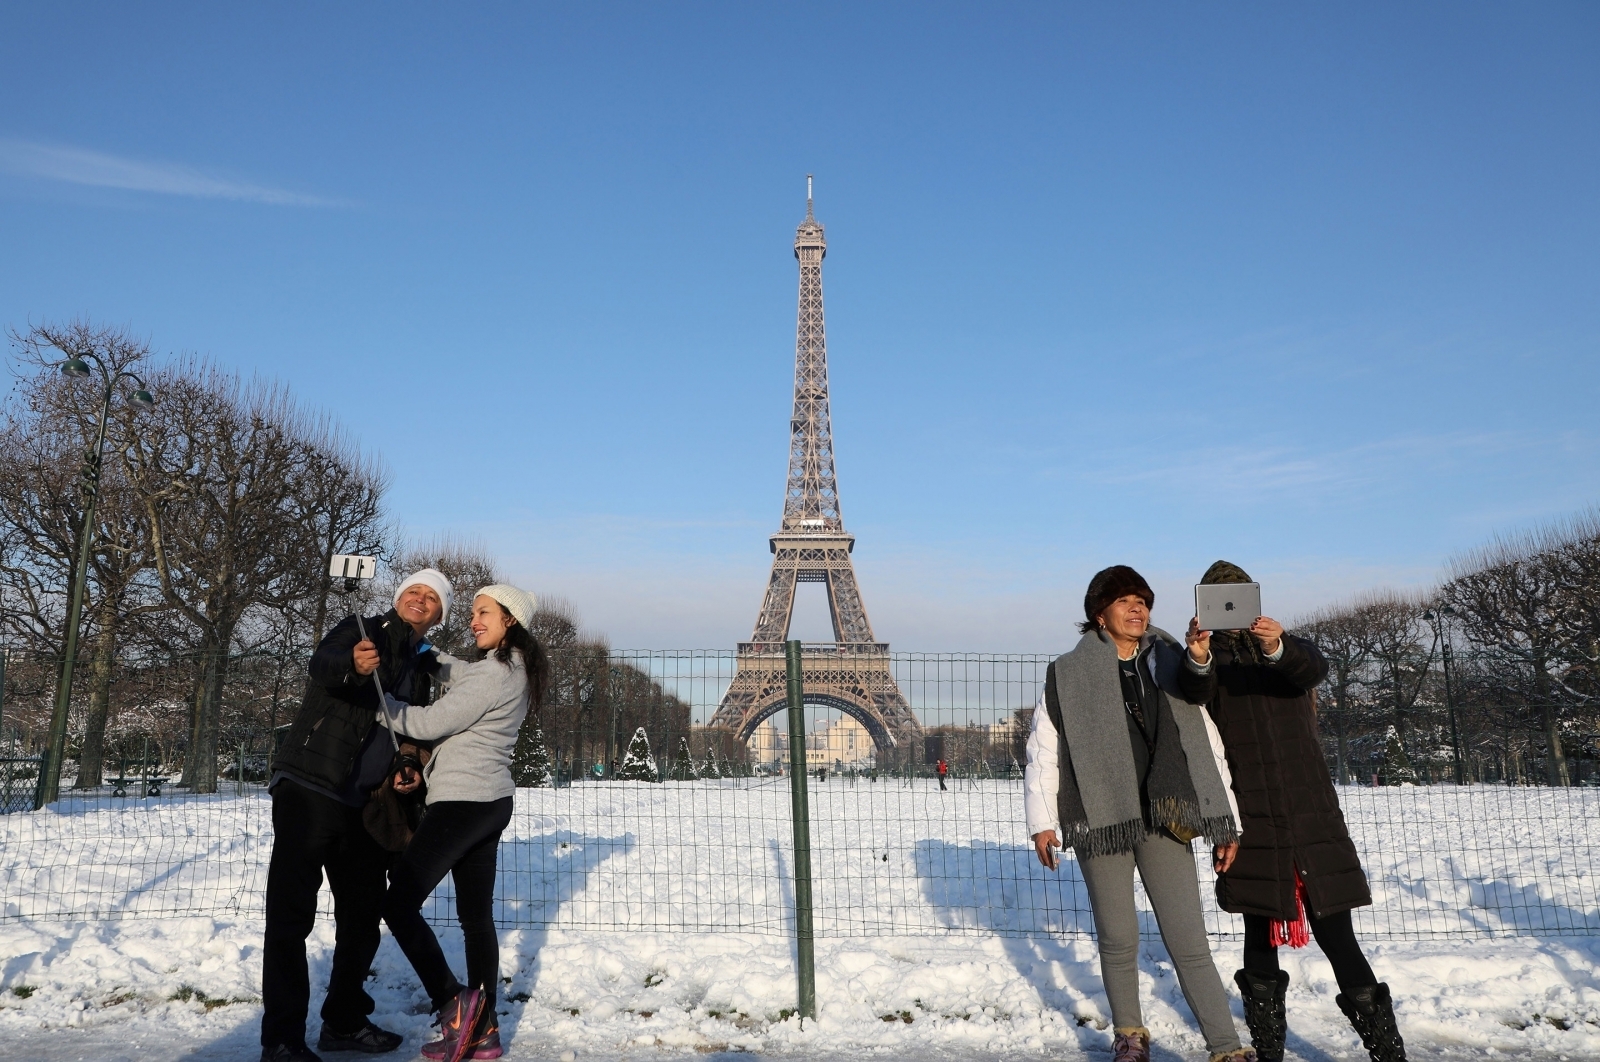 25 Photos Of Snow Covered Paris Looking Even More